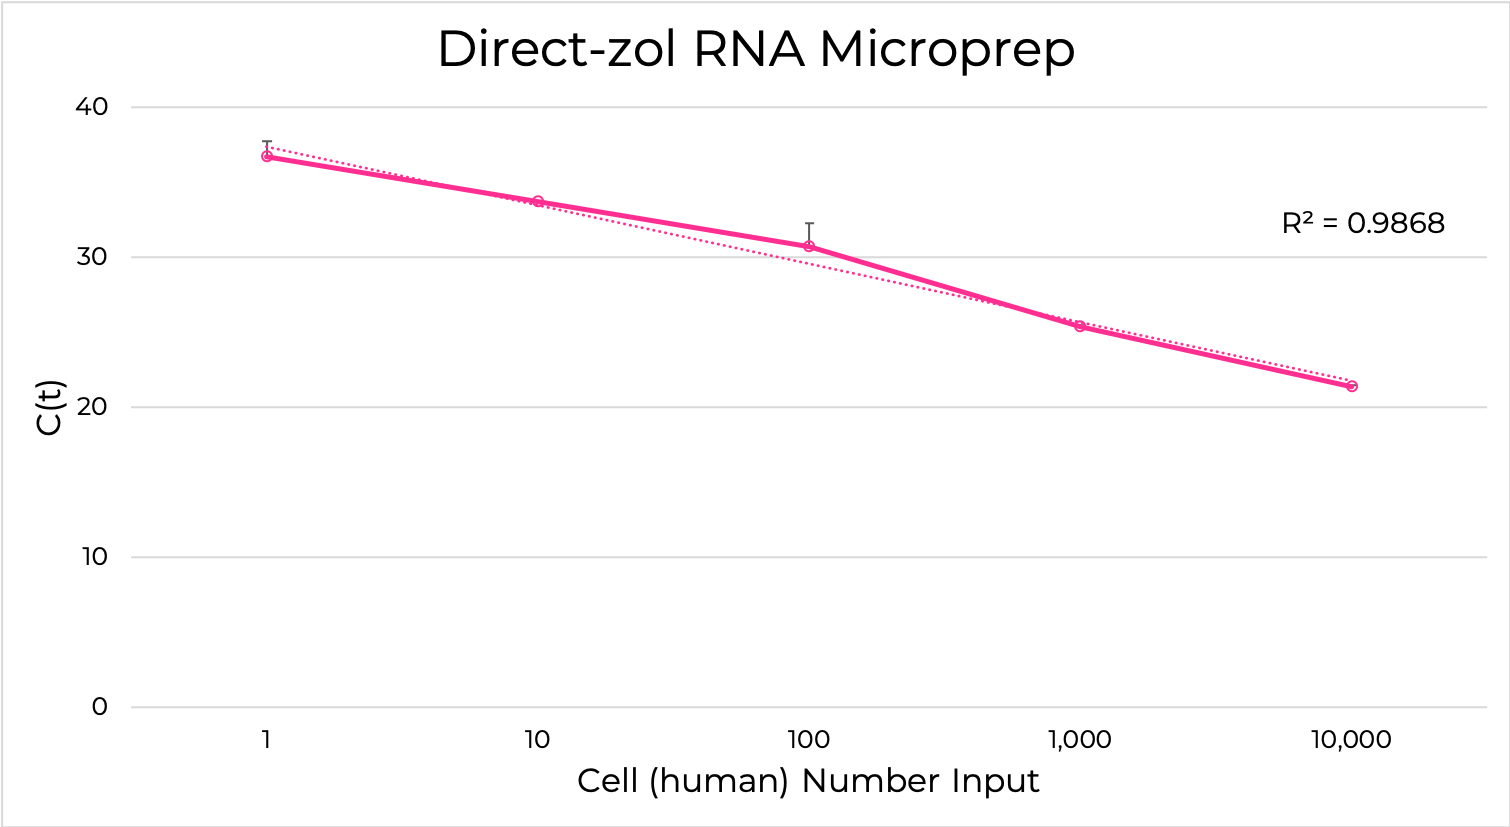 Total RNA purified from 104 to a single human epithelial cell